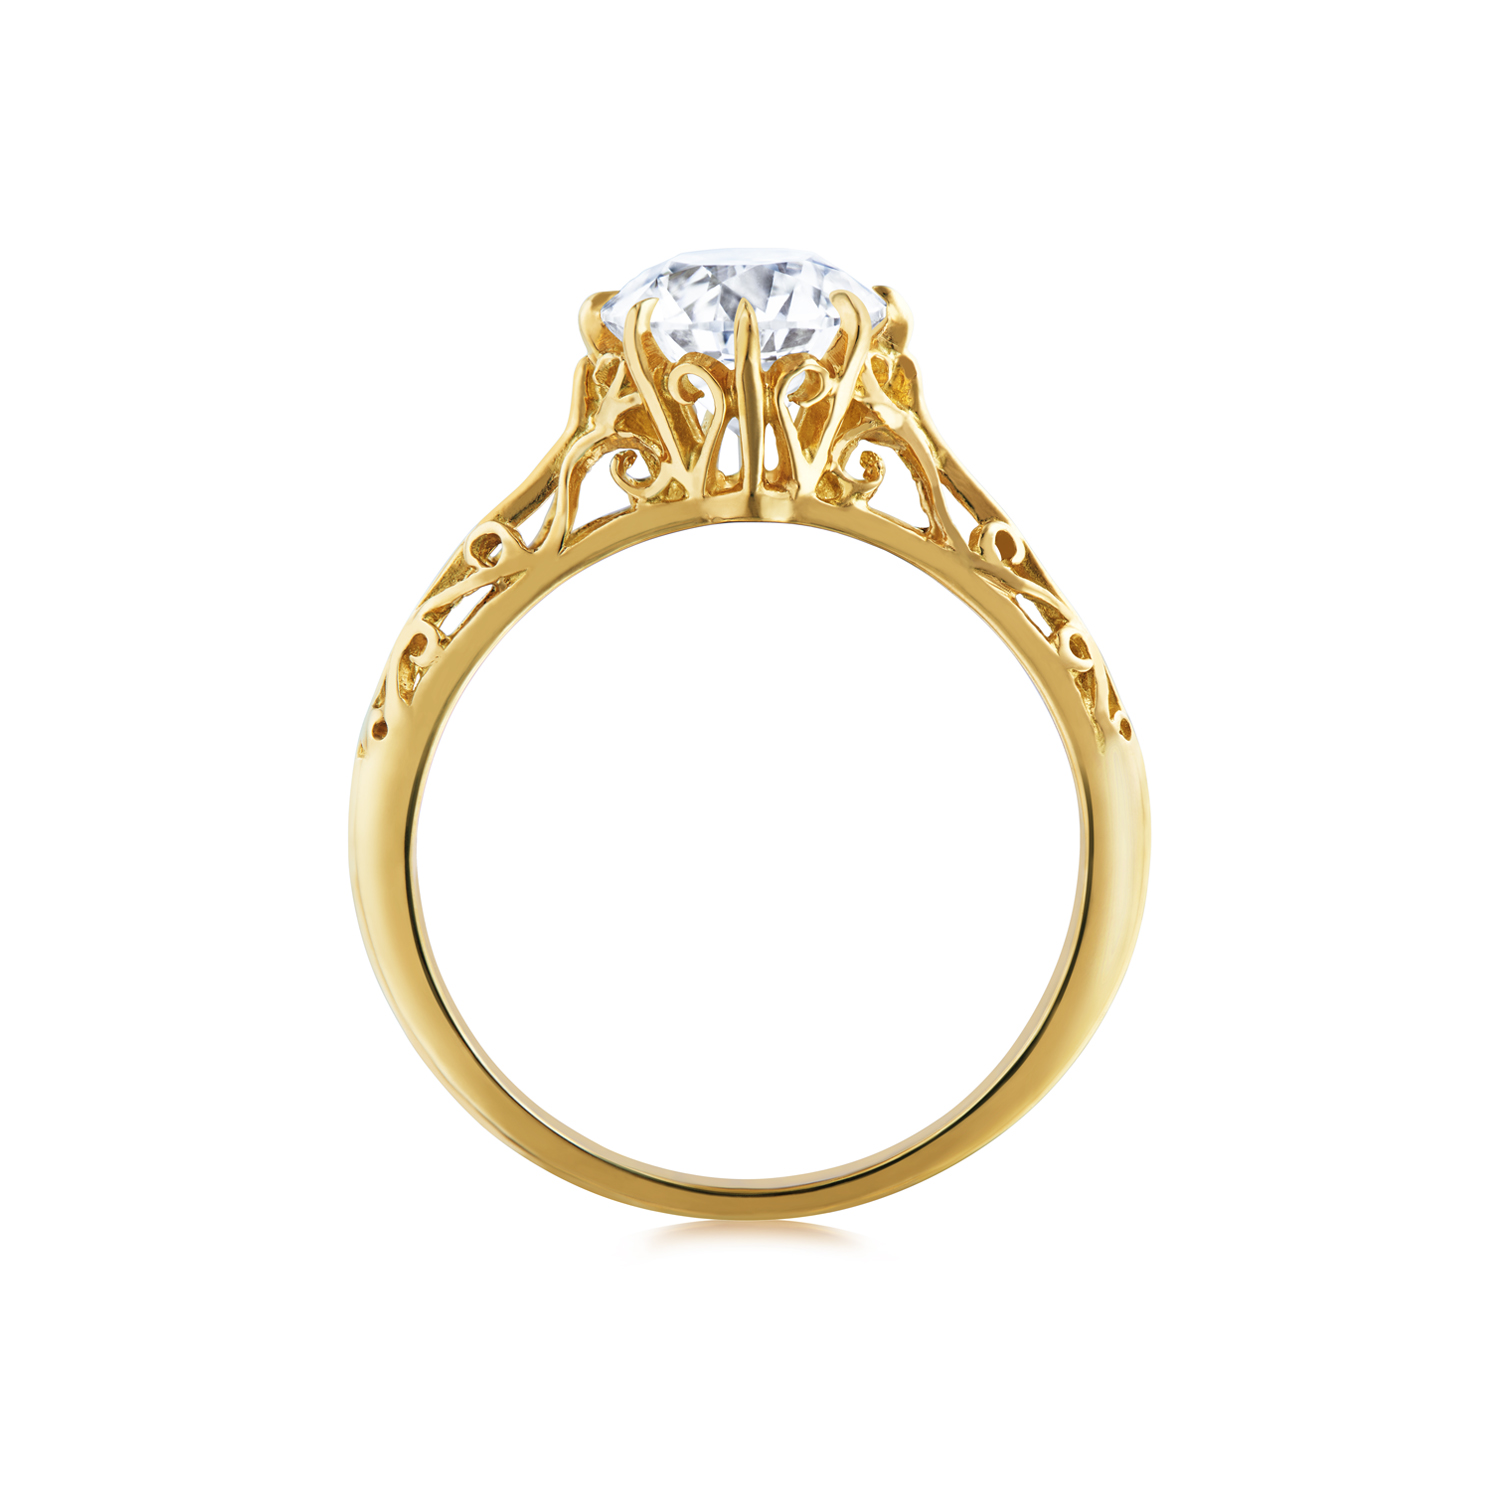 Fred Leighton Round 18K Yellow Gold Filigree Ring Signed Fred Leighton Style F1011-DIAOEYG